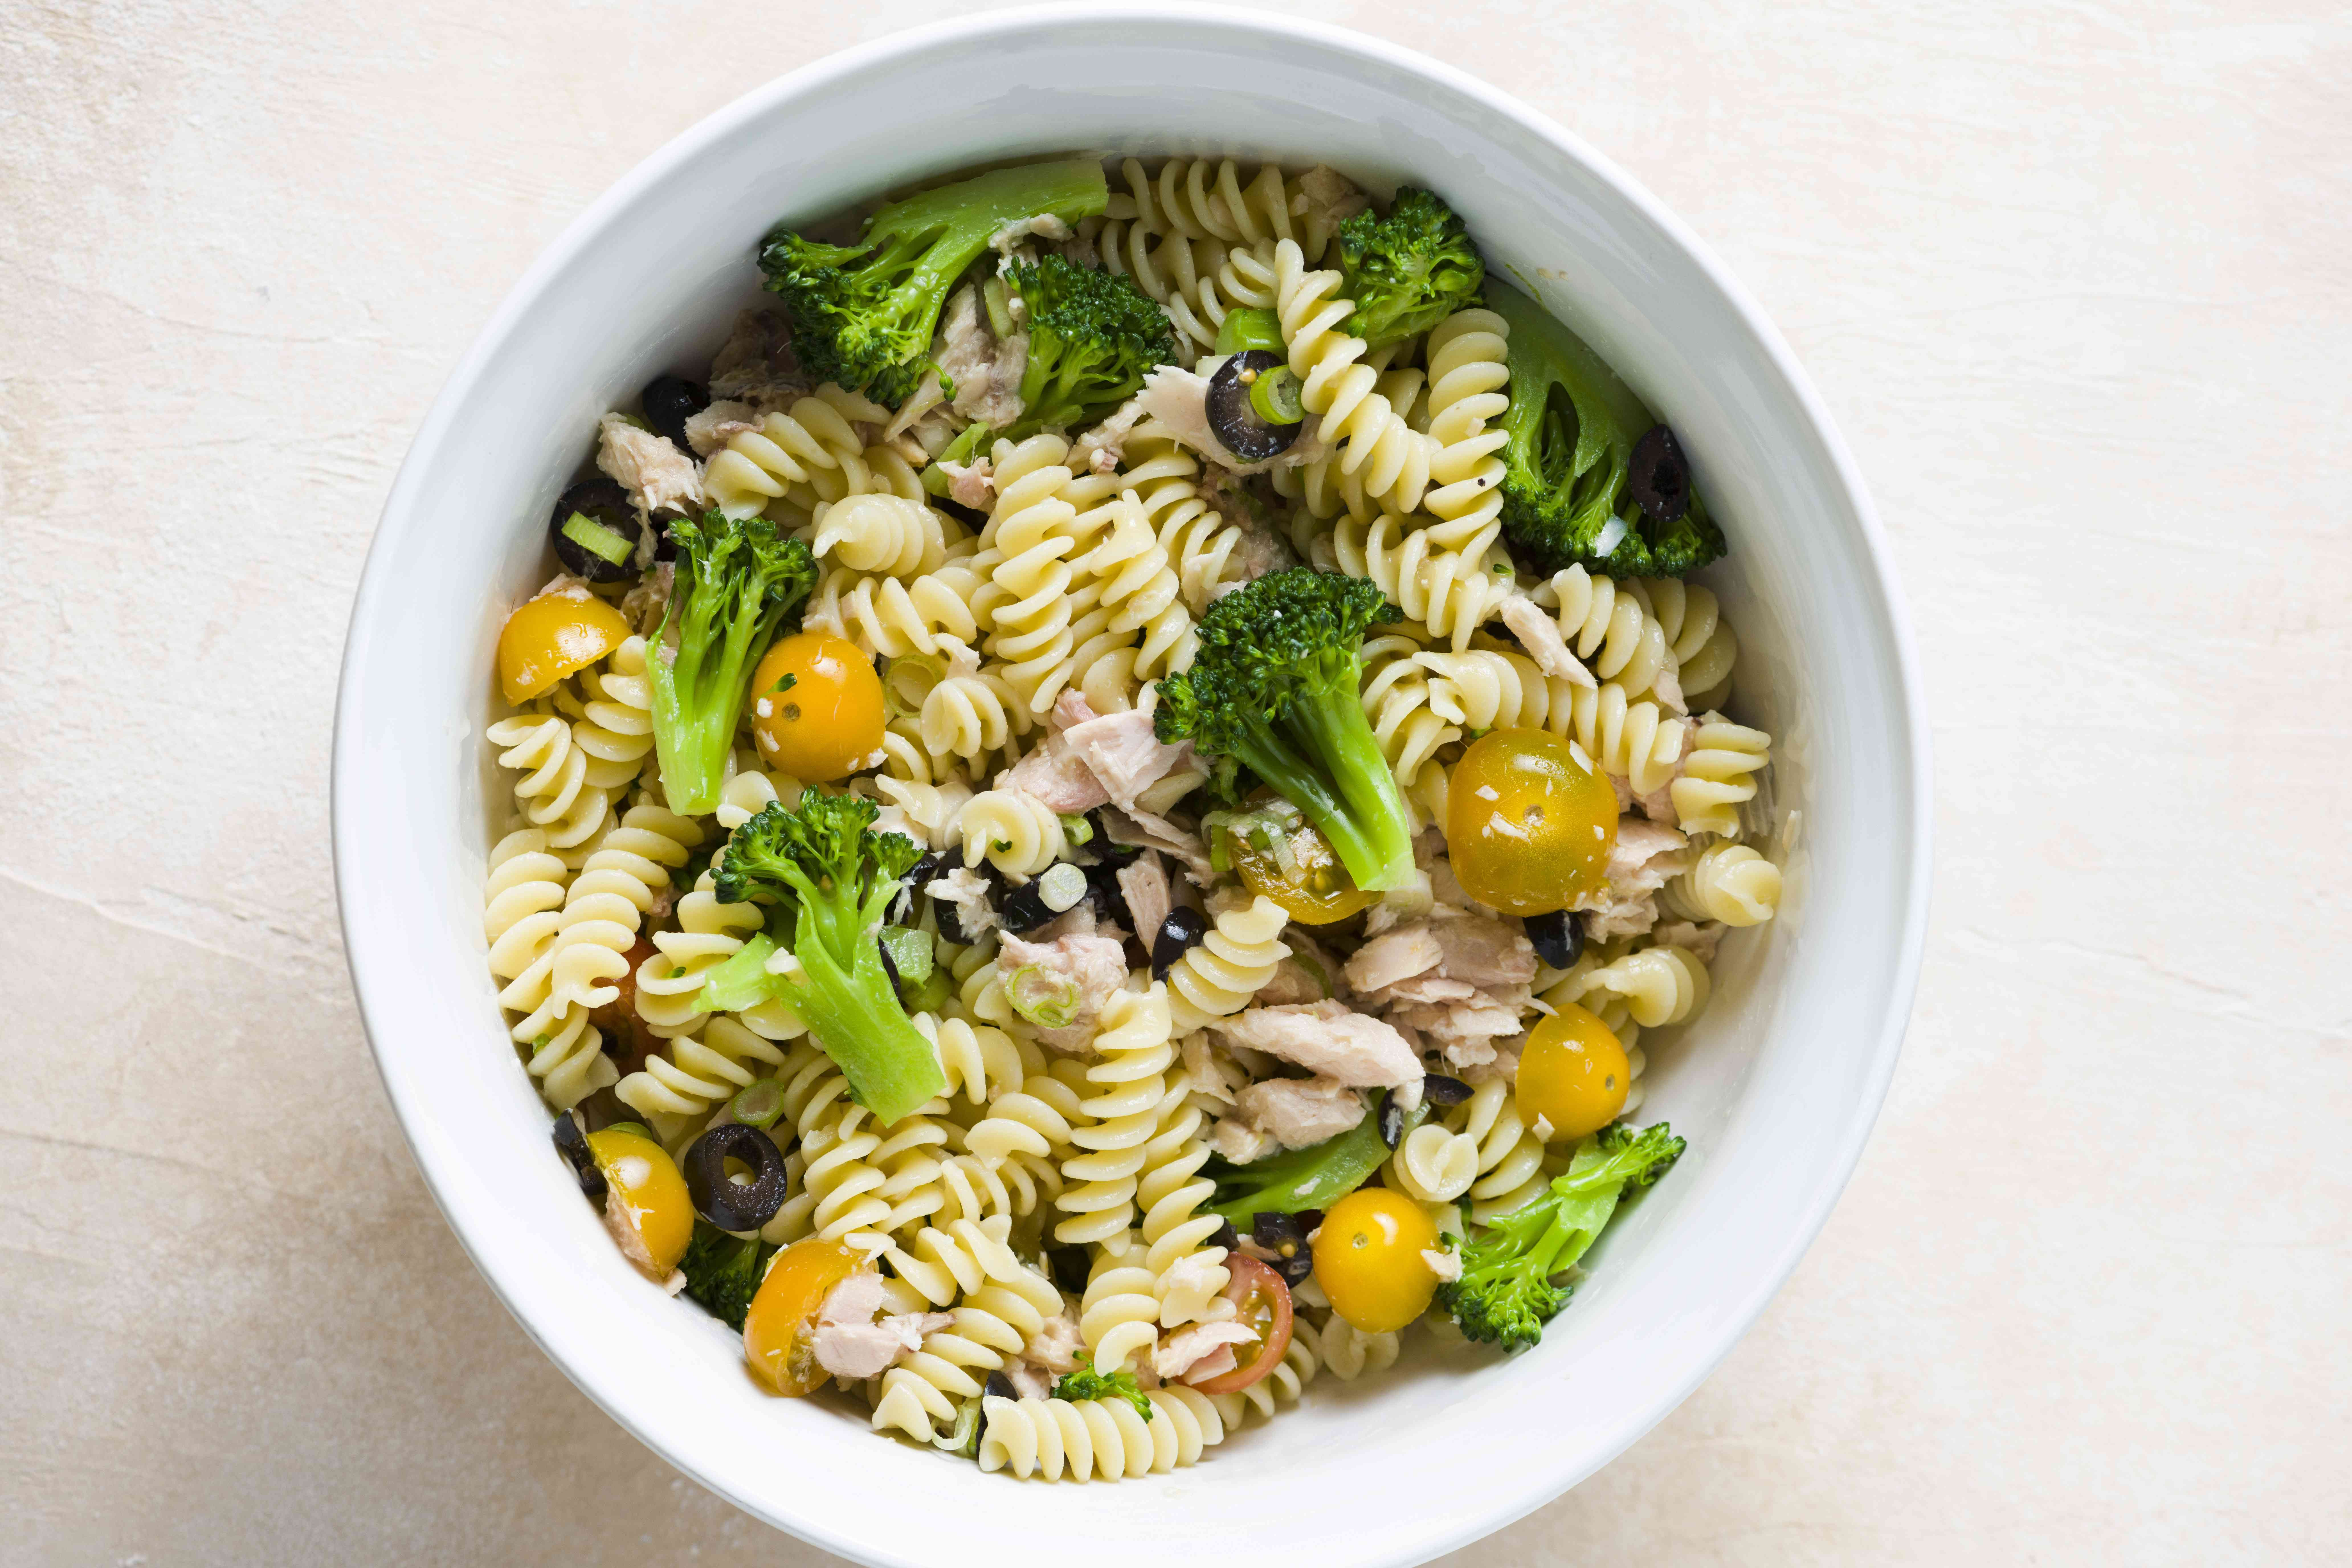 combine the pasta and broccoli with the tuna, tomatoes, olives, and scallions in a bowl